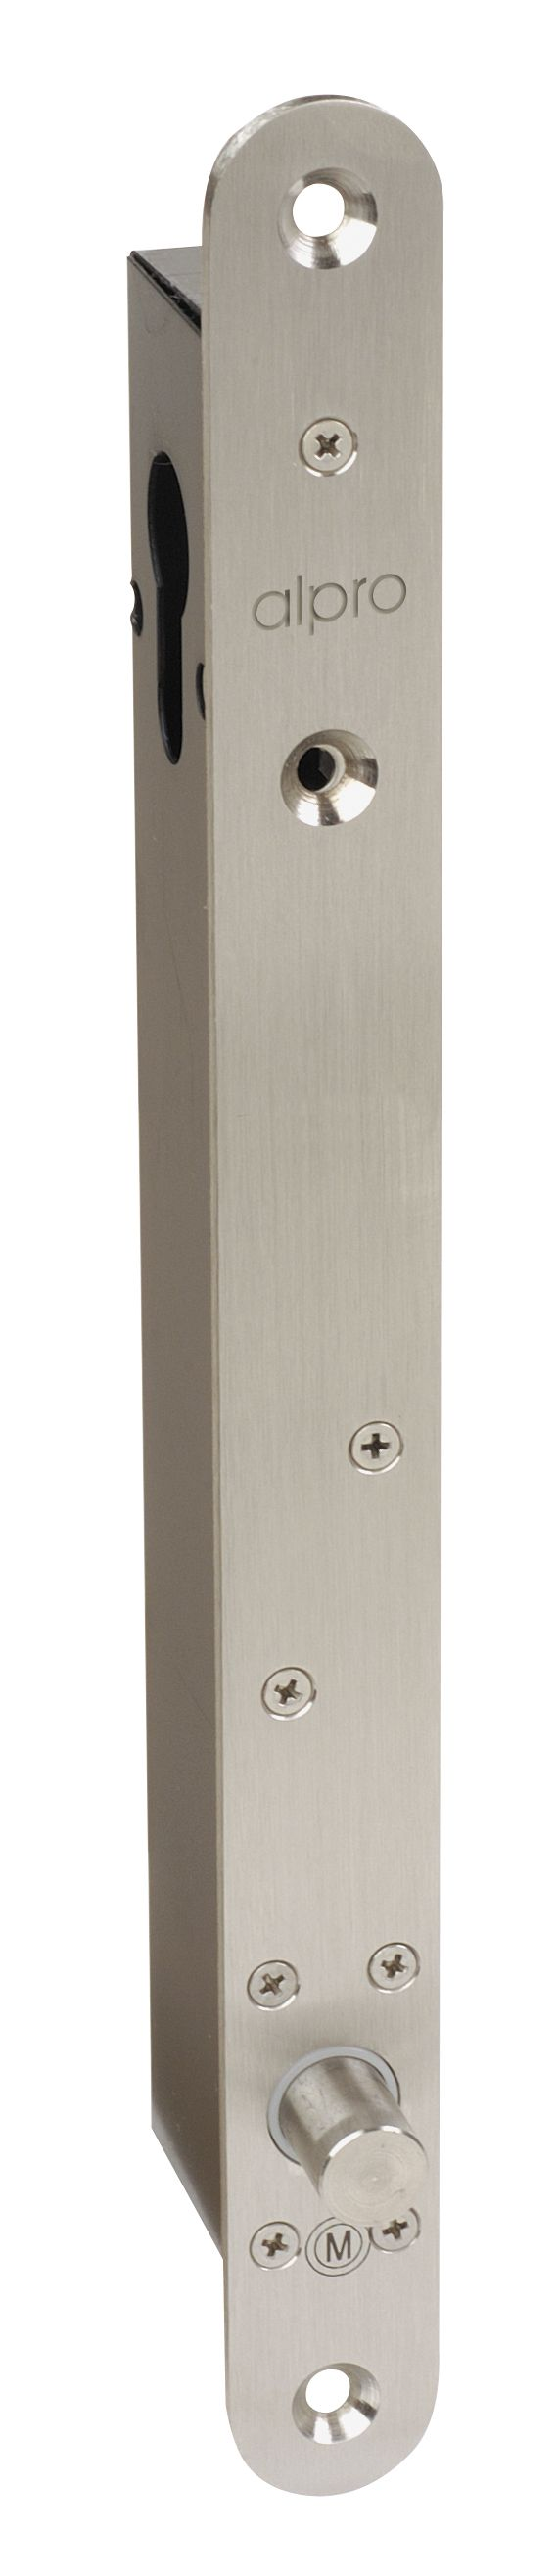 The Alpro DB25KO deadlocking bolt key override model offers the same functionality as the standard DB25  sc 1 st  Pinterest & 27 best Access Control images on Pinterest | Access control ...